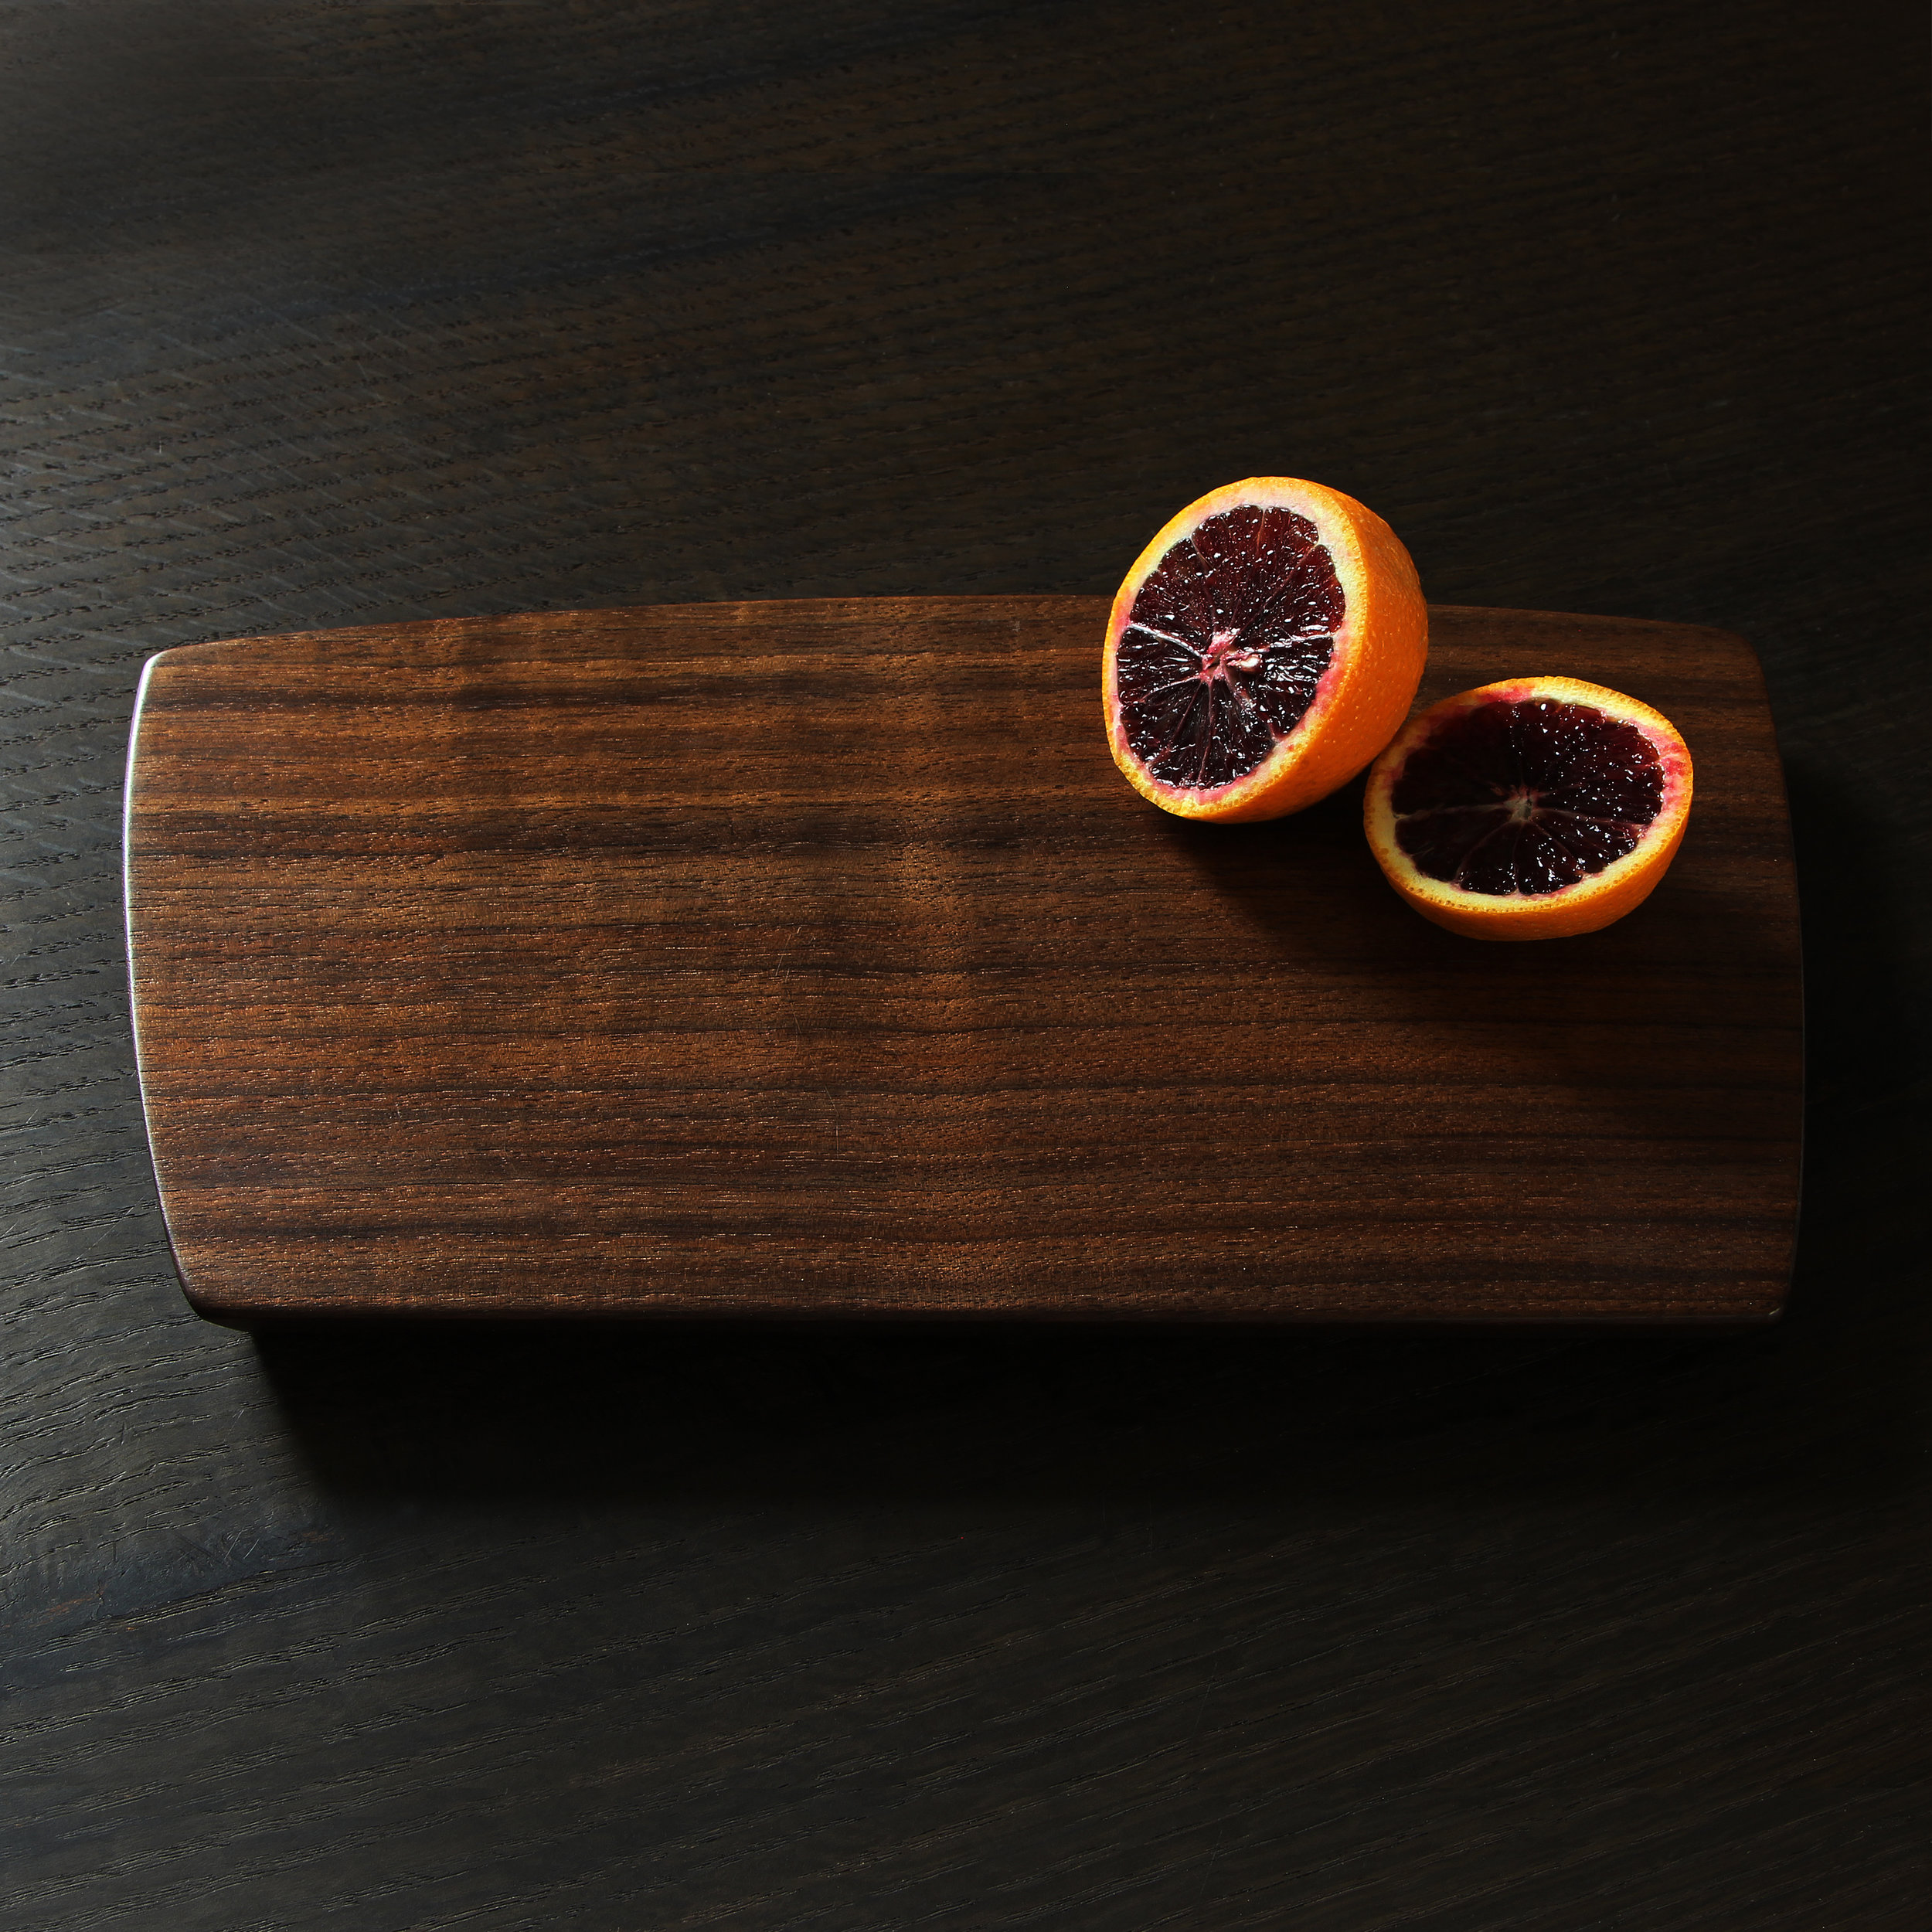 SQ - Walnut Platter 15x8 blood oranges.jpg